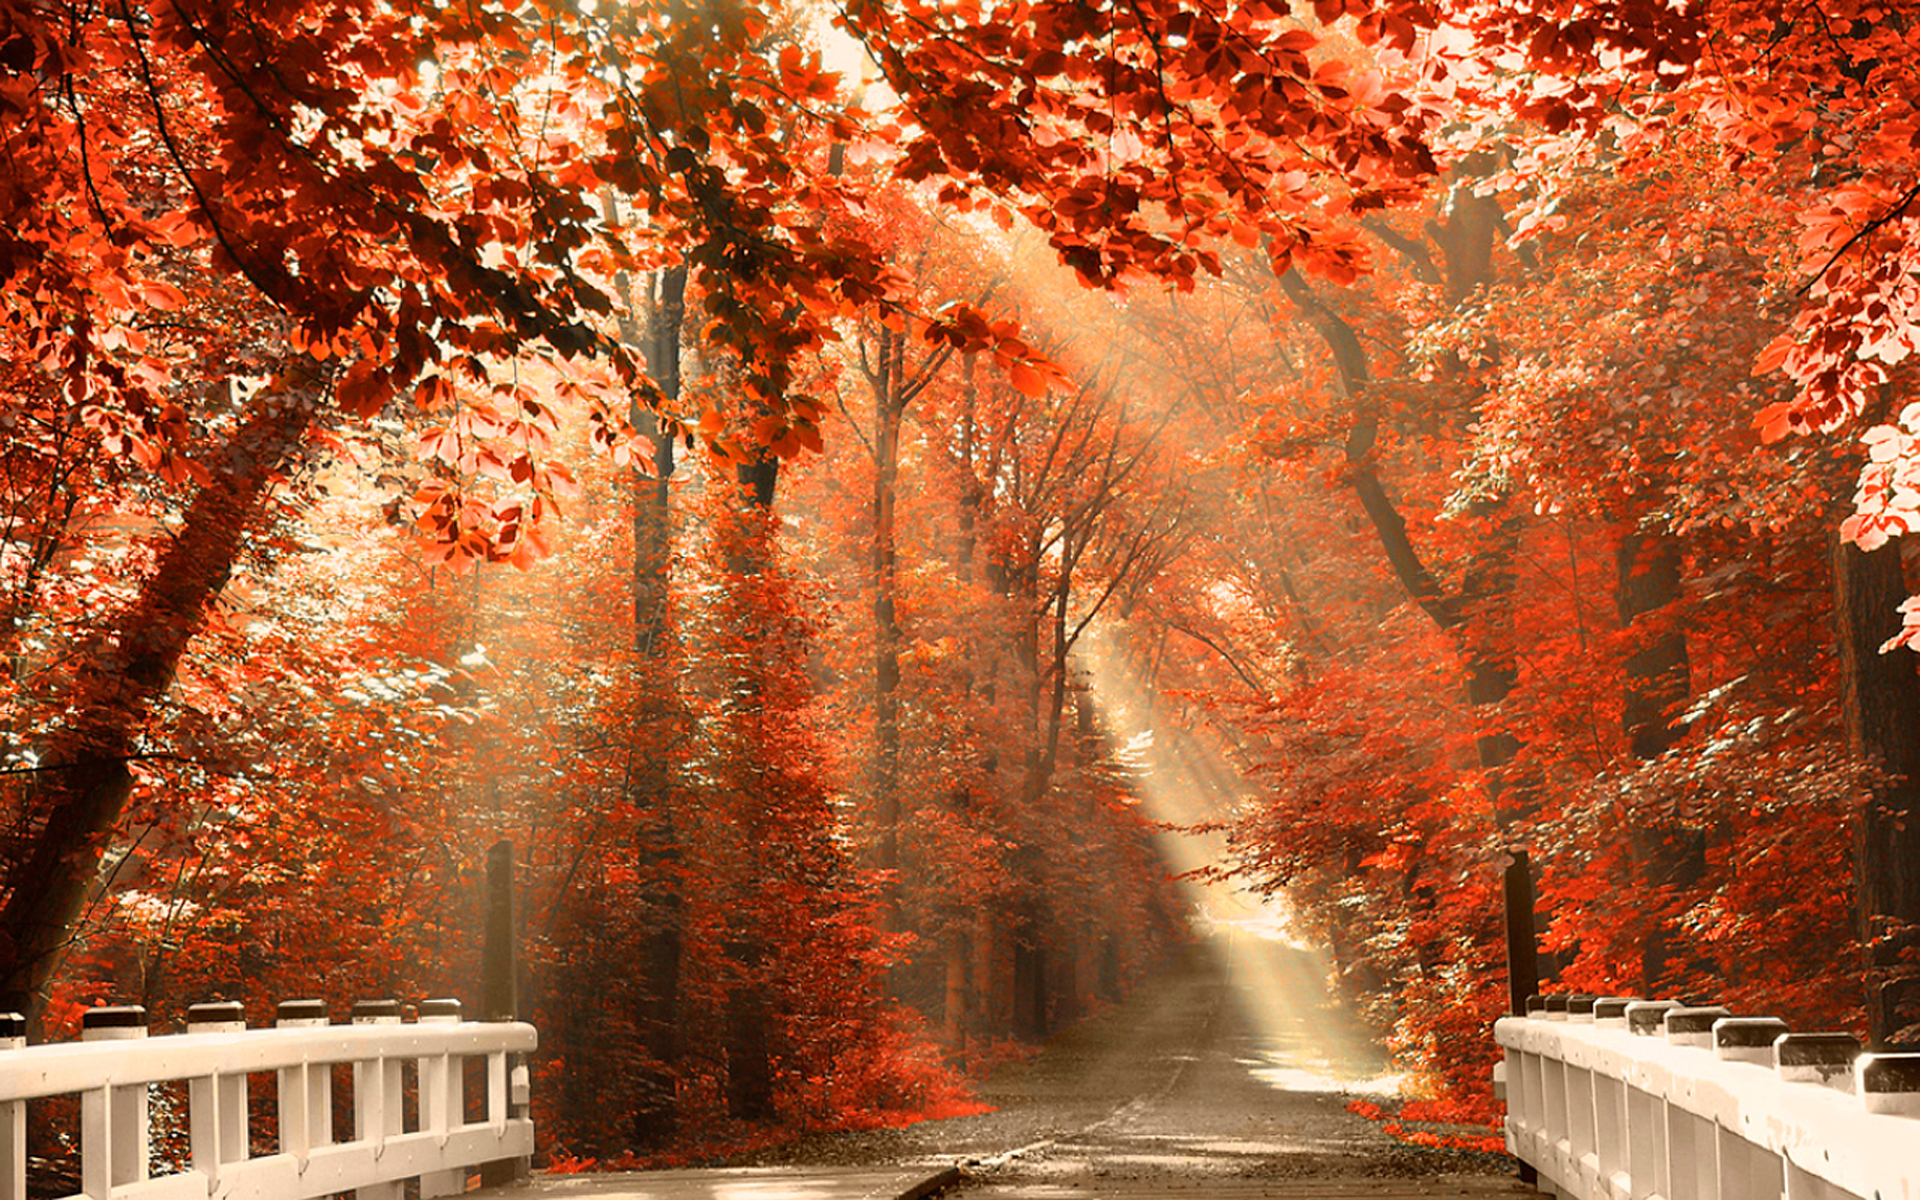 Autumn Nature Desktop Backgrounds wallpaper wallpaper hd 1920x1200